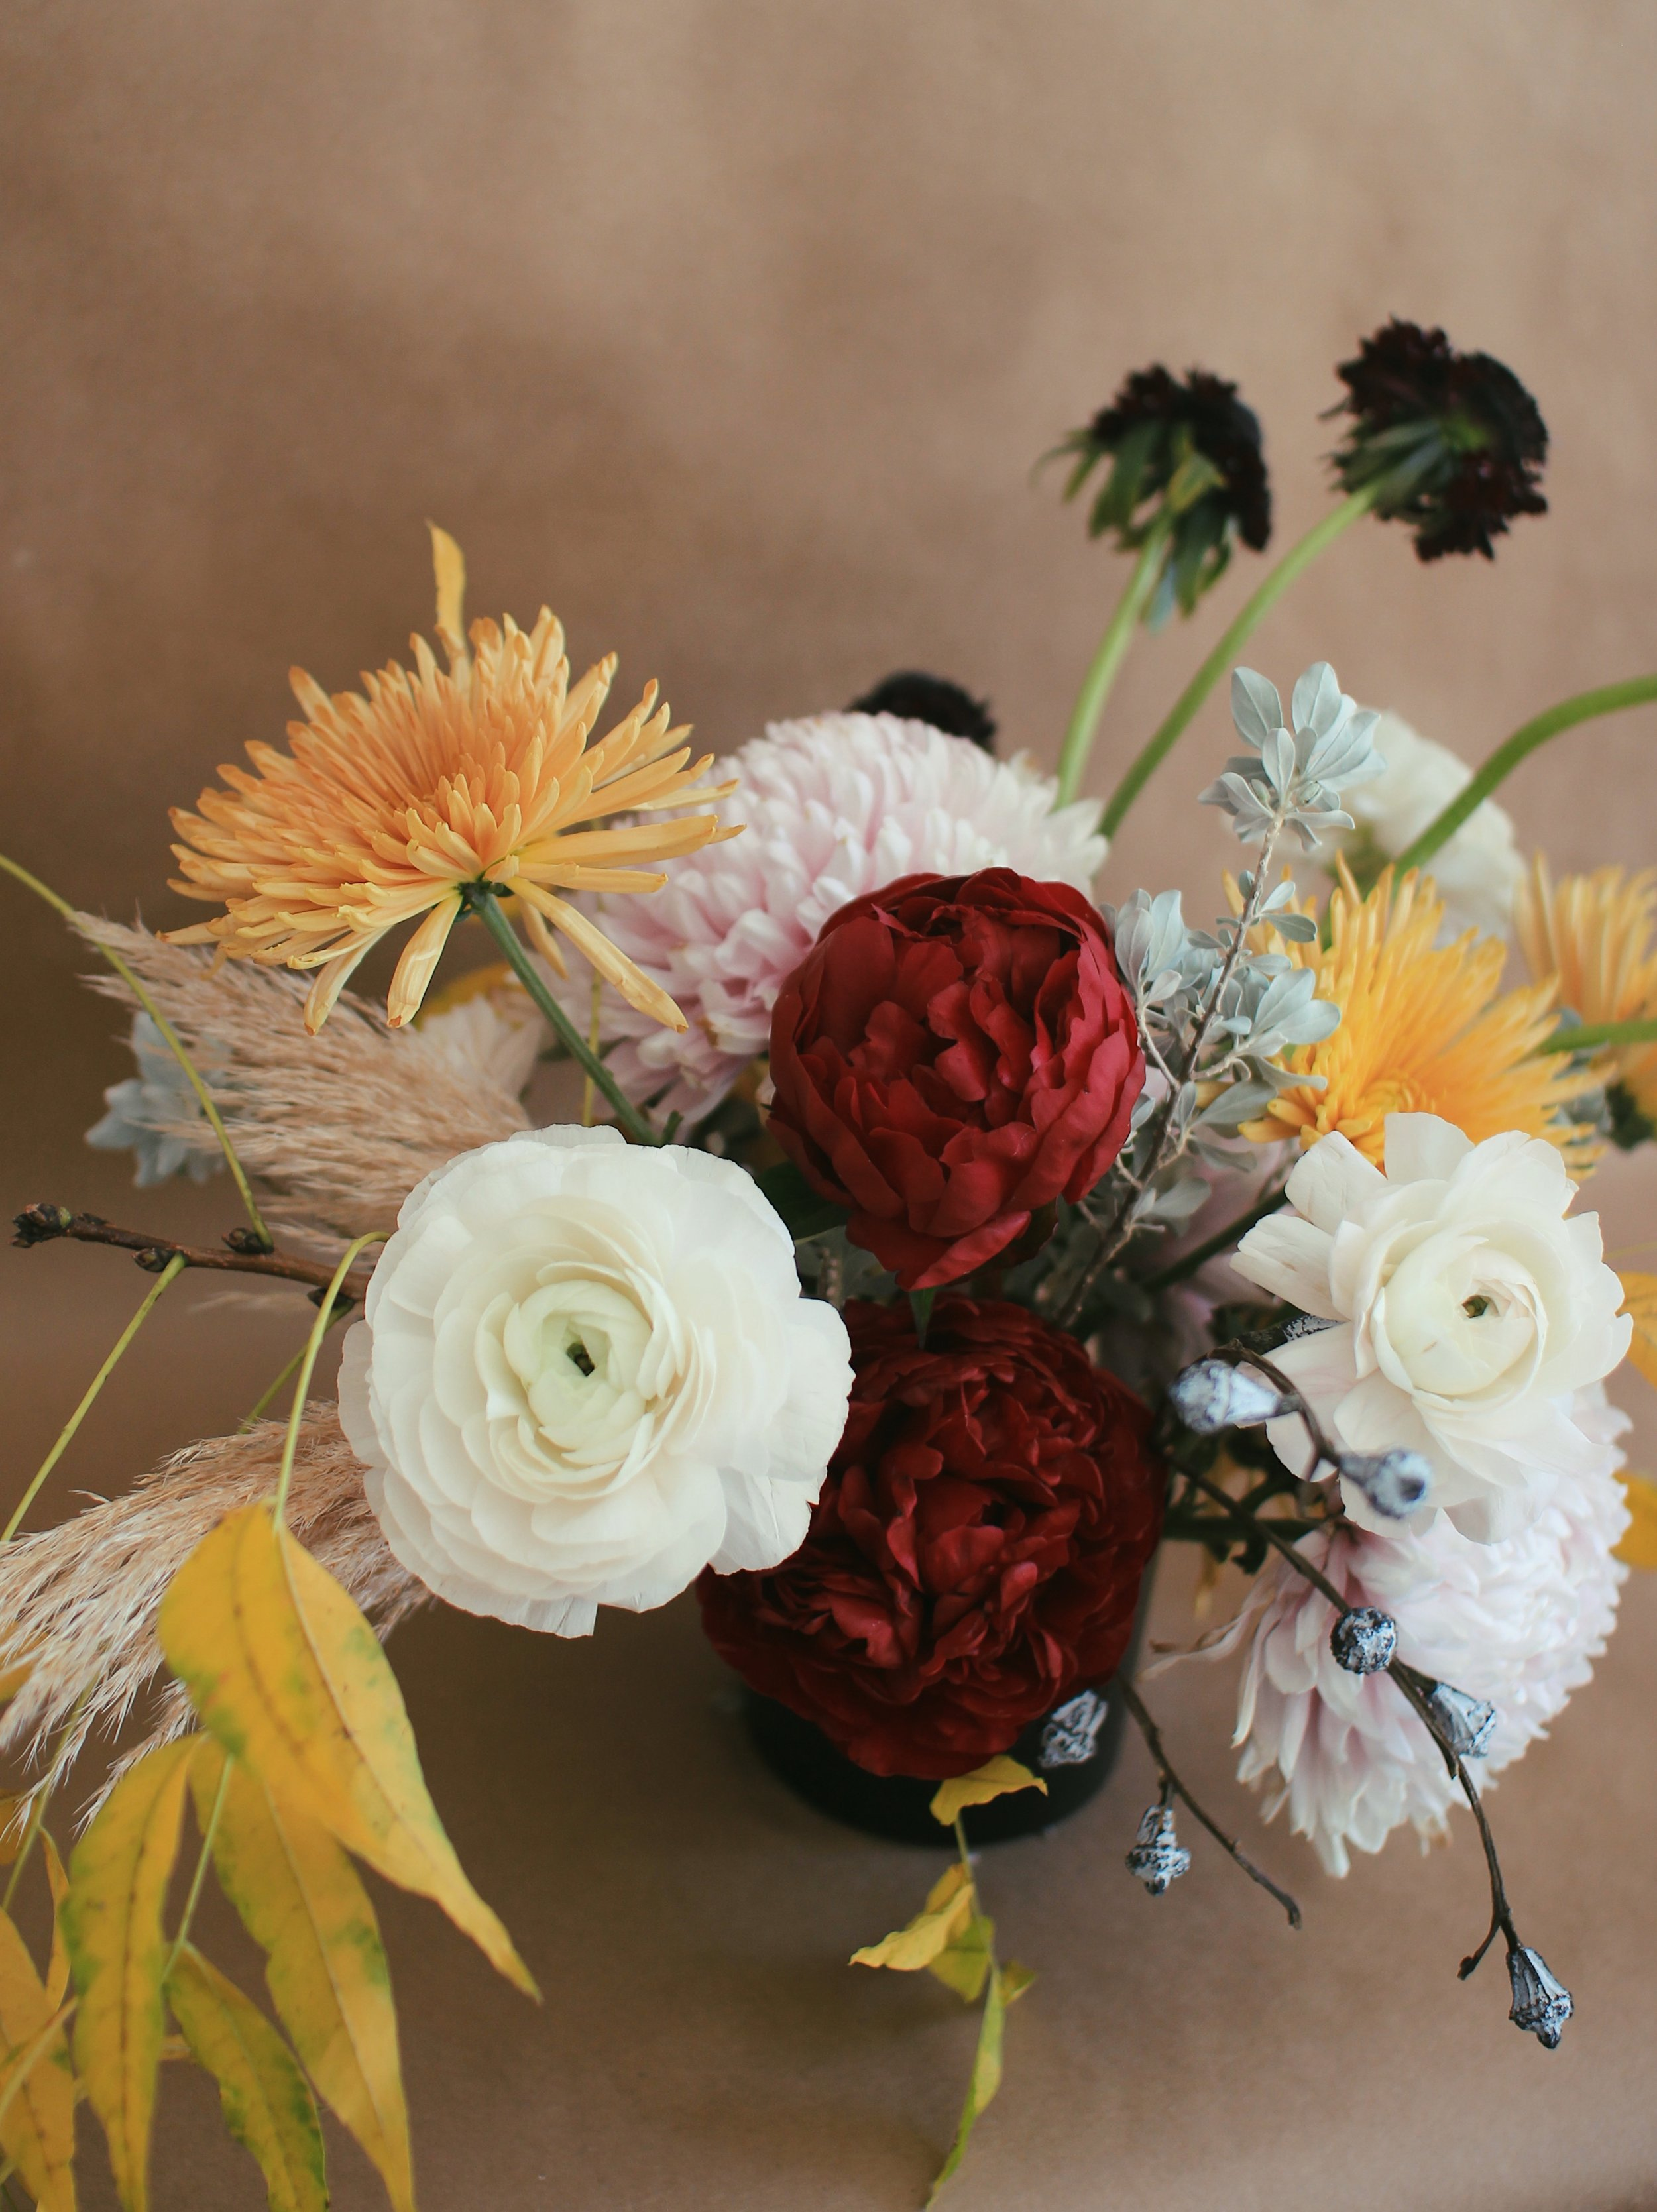 CLOONEY RANUNCULUS, RED CHARM PEONIES, ORANGE SPIDER MUMS, SILVER BELL PODS, PAMPAS GRASS, FALL FOLIAGE